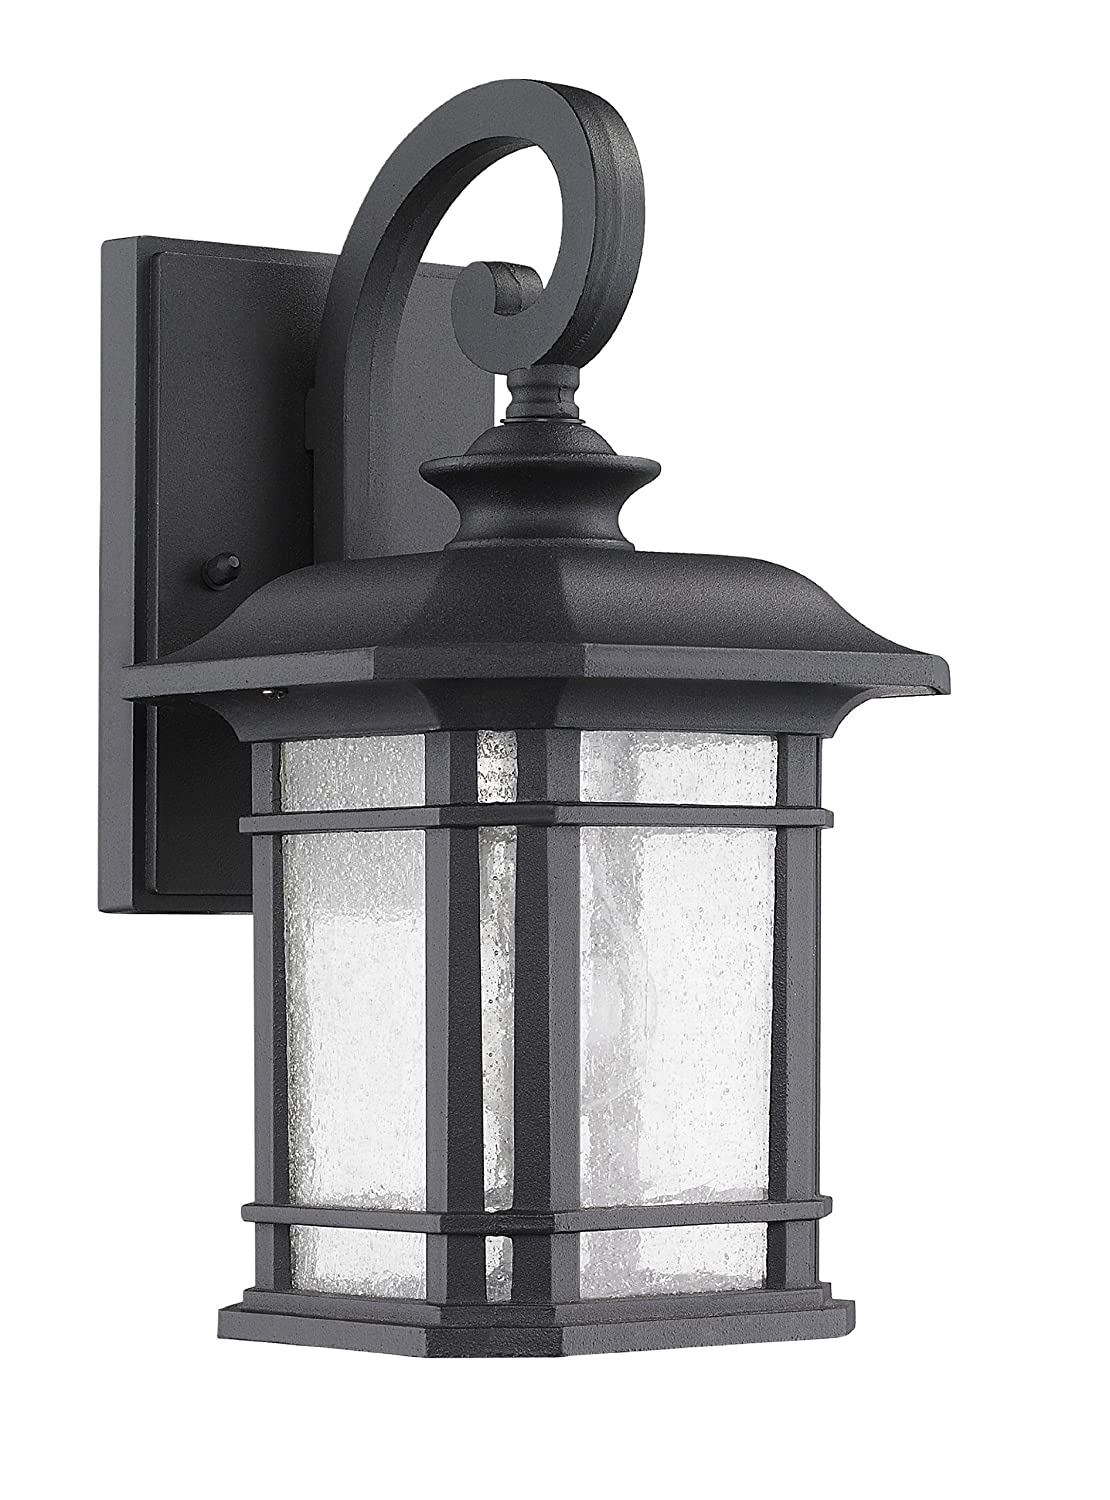 Chloe lighting ch22021bk17 od1franklin transitional 1 light black outdoor wall sconce 17 height home outdoor electric lighting amazon com